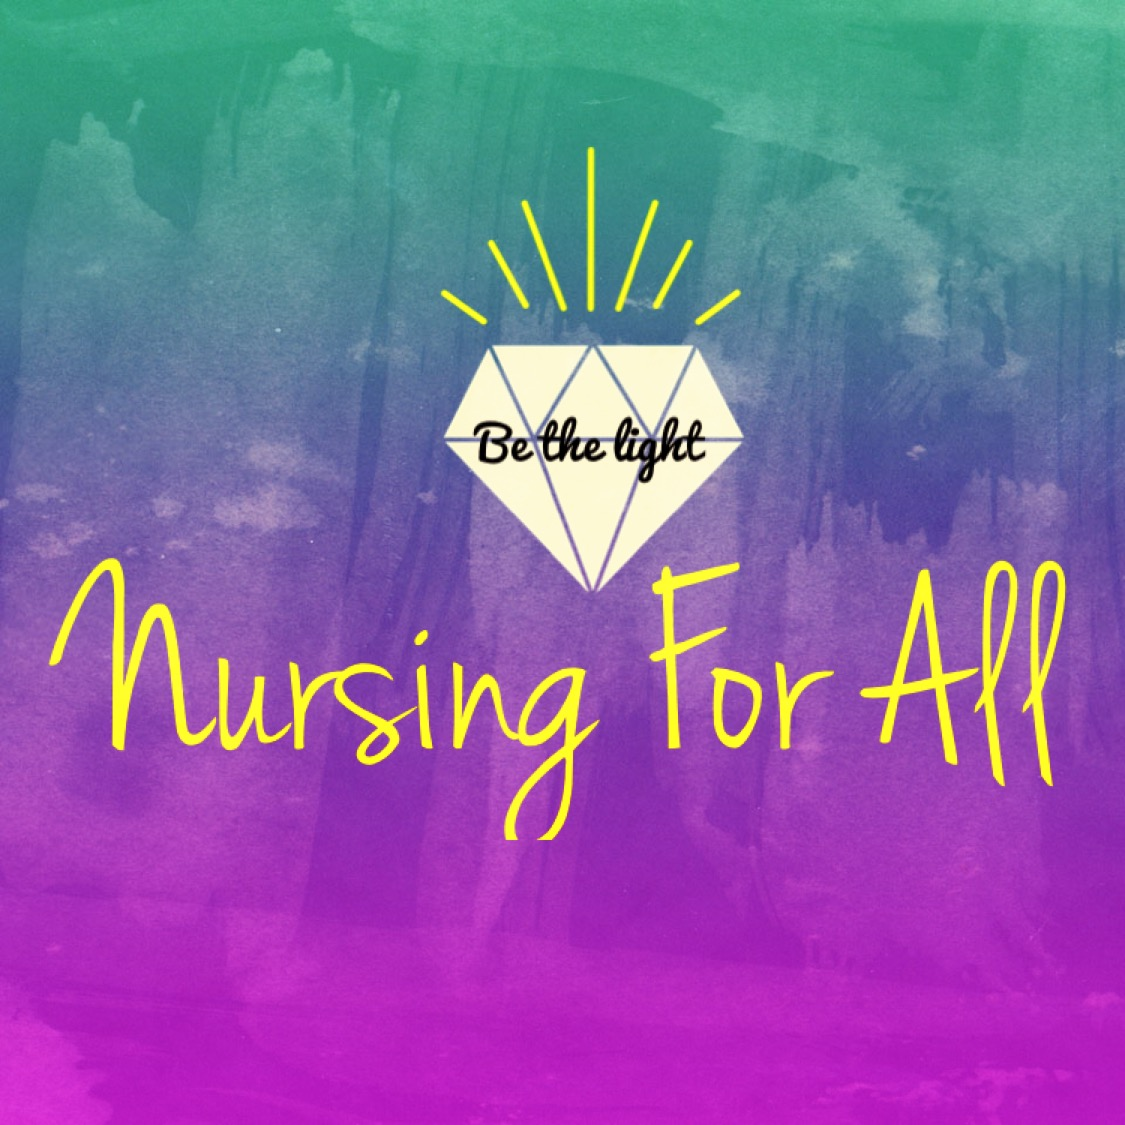 Nursing For All